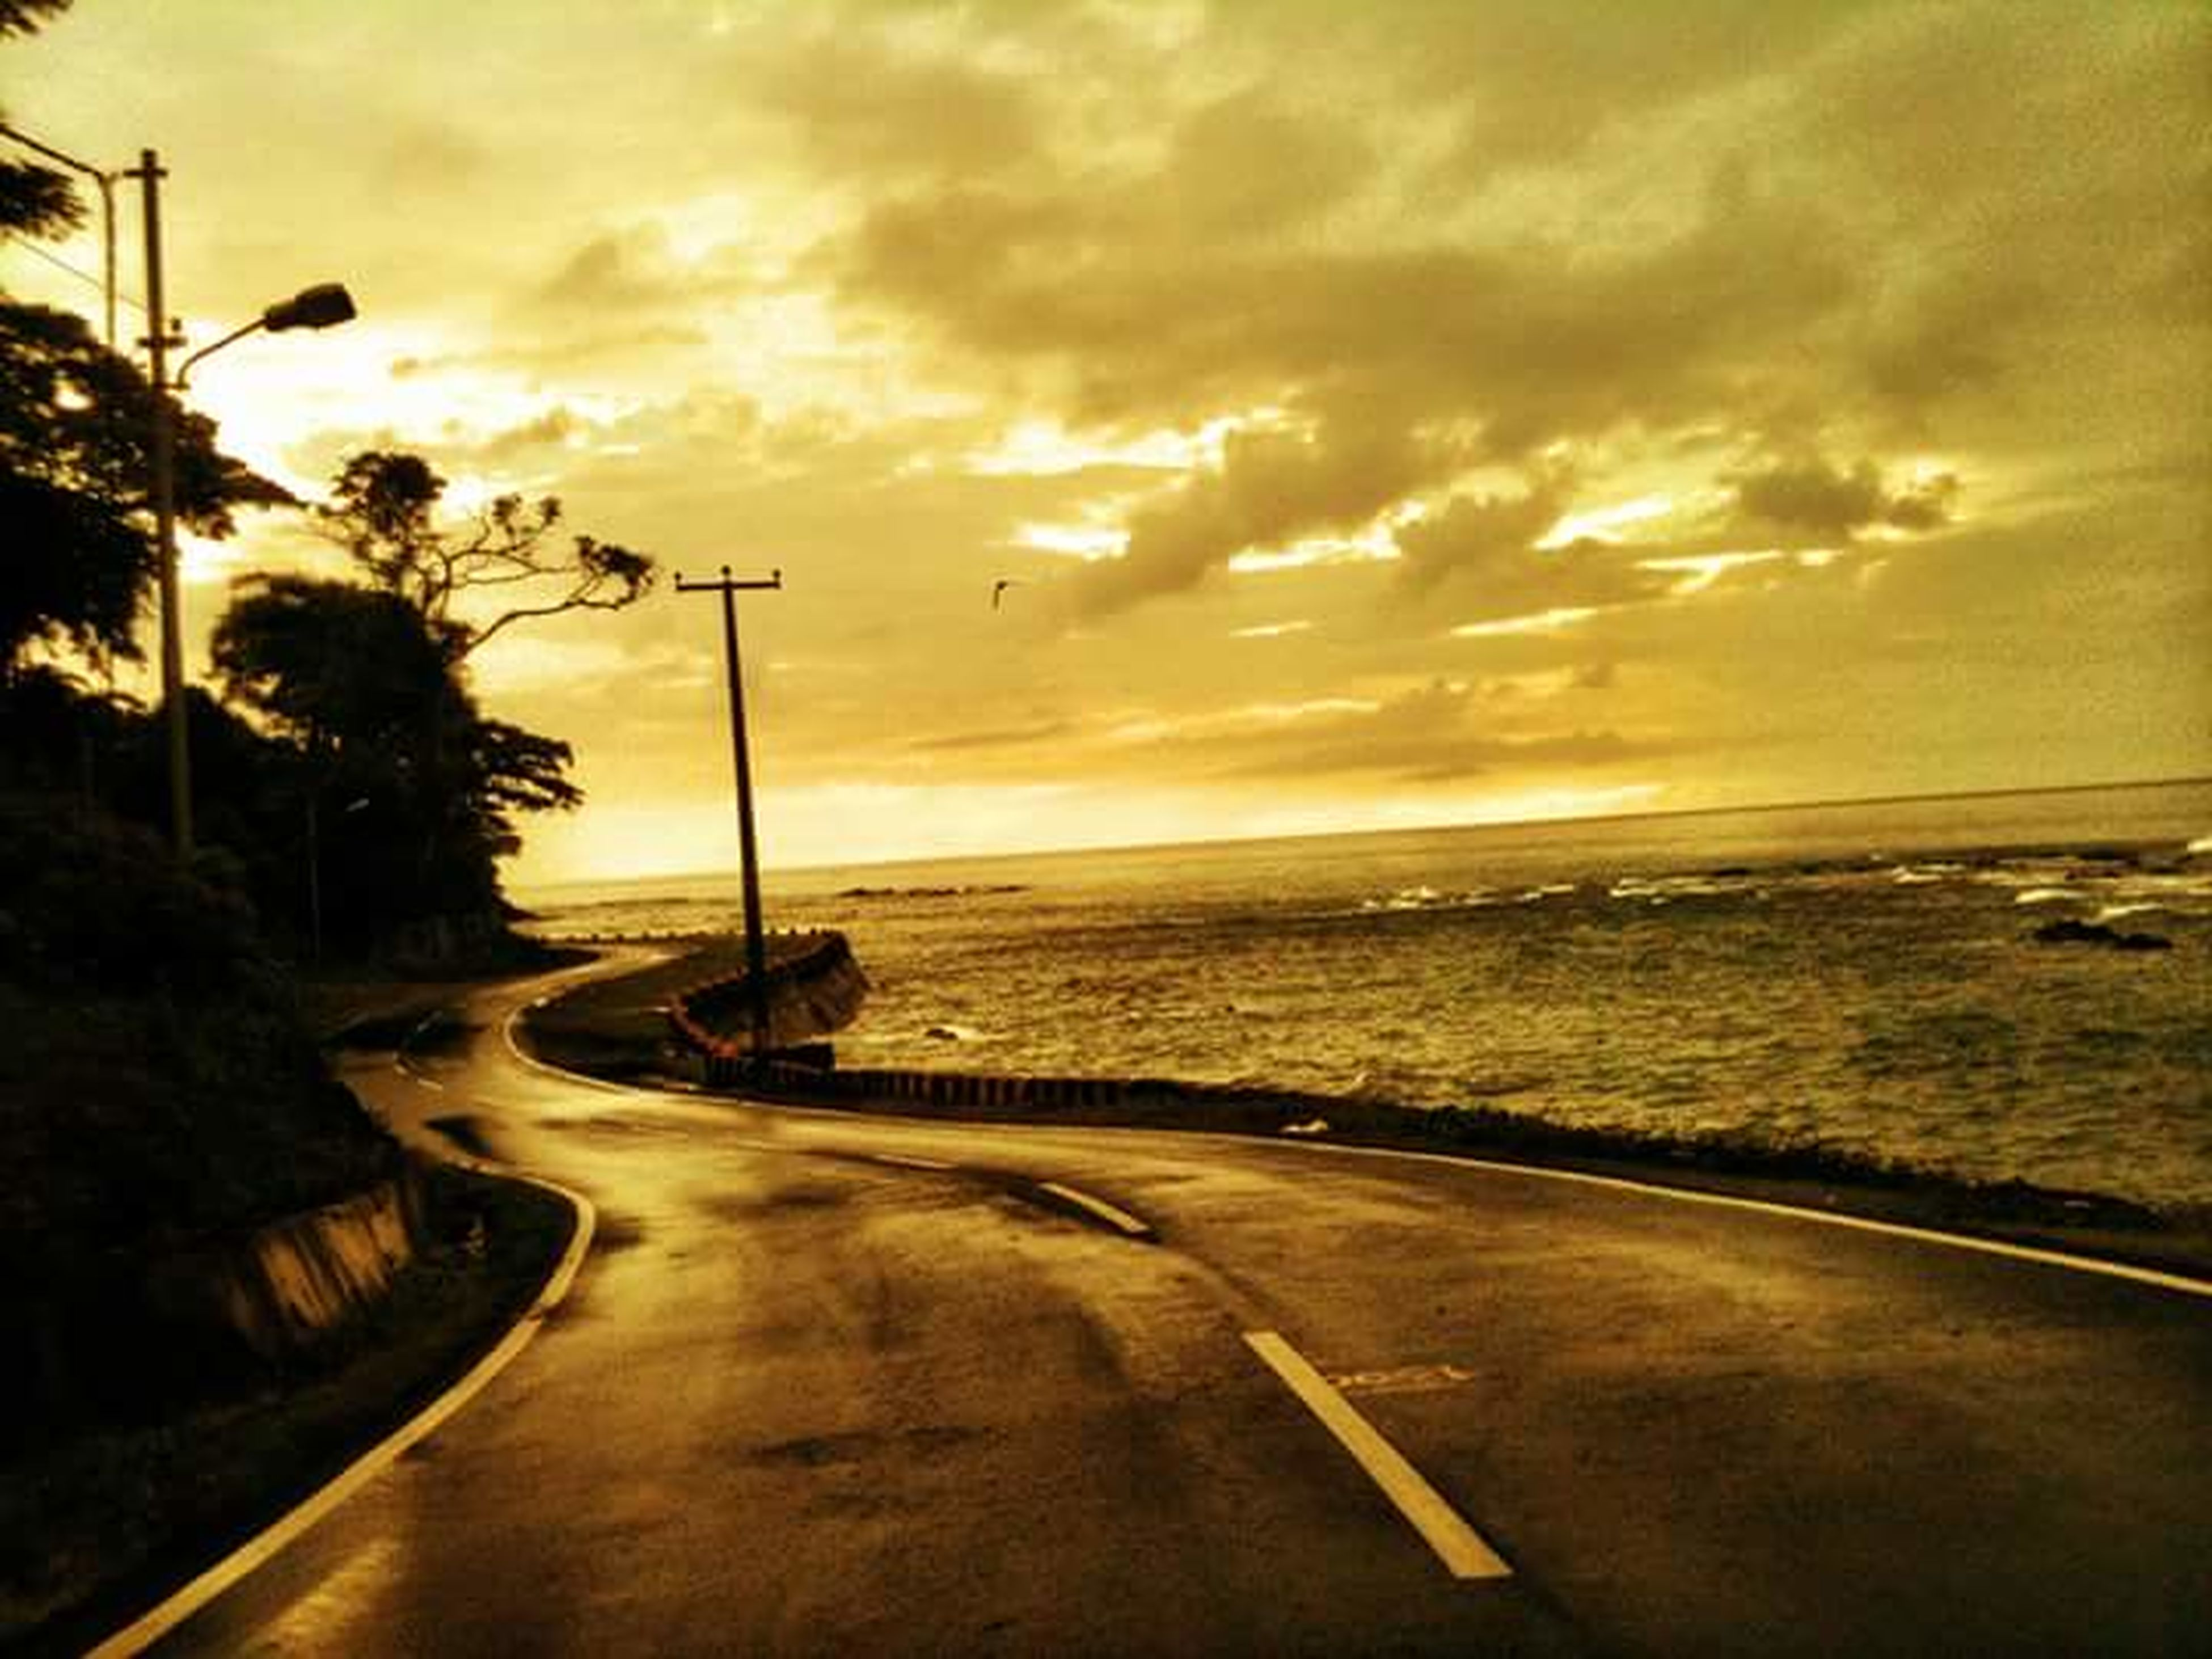 sunset, sky, sea, road, water, cloud - sky, the way forward, horizon over water, scenics, tranquil scene, tranquility, beauty in nature, beach, transportation, cloudy, cloud, nature, dramatic sky, diminishing perspective, street